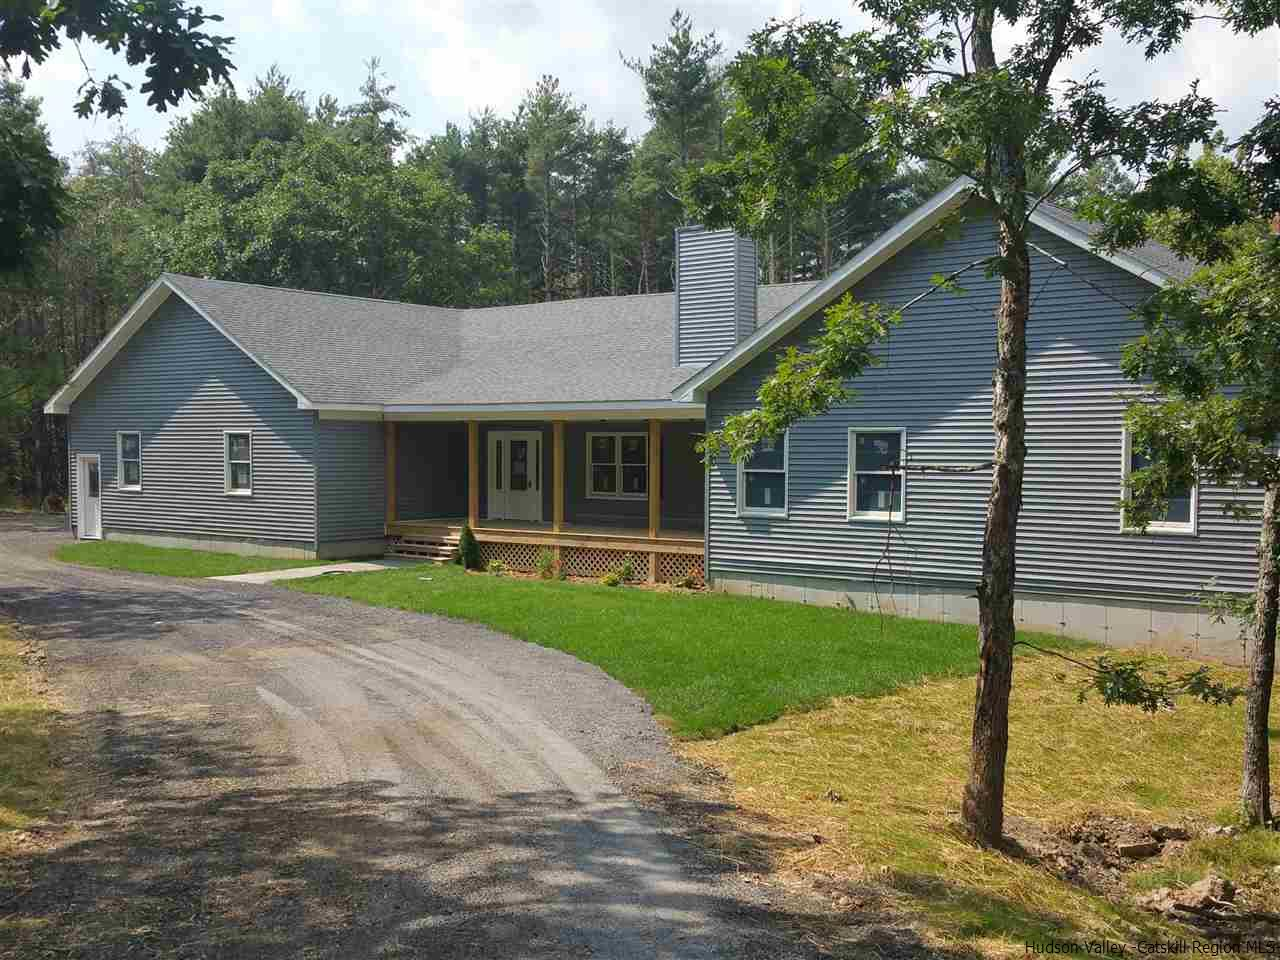 Single Family Home for Sale at 9 Darlene's Way Road 9 Darlene's Way Road Saugerties, New York 12477 United States